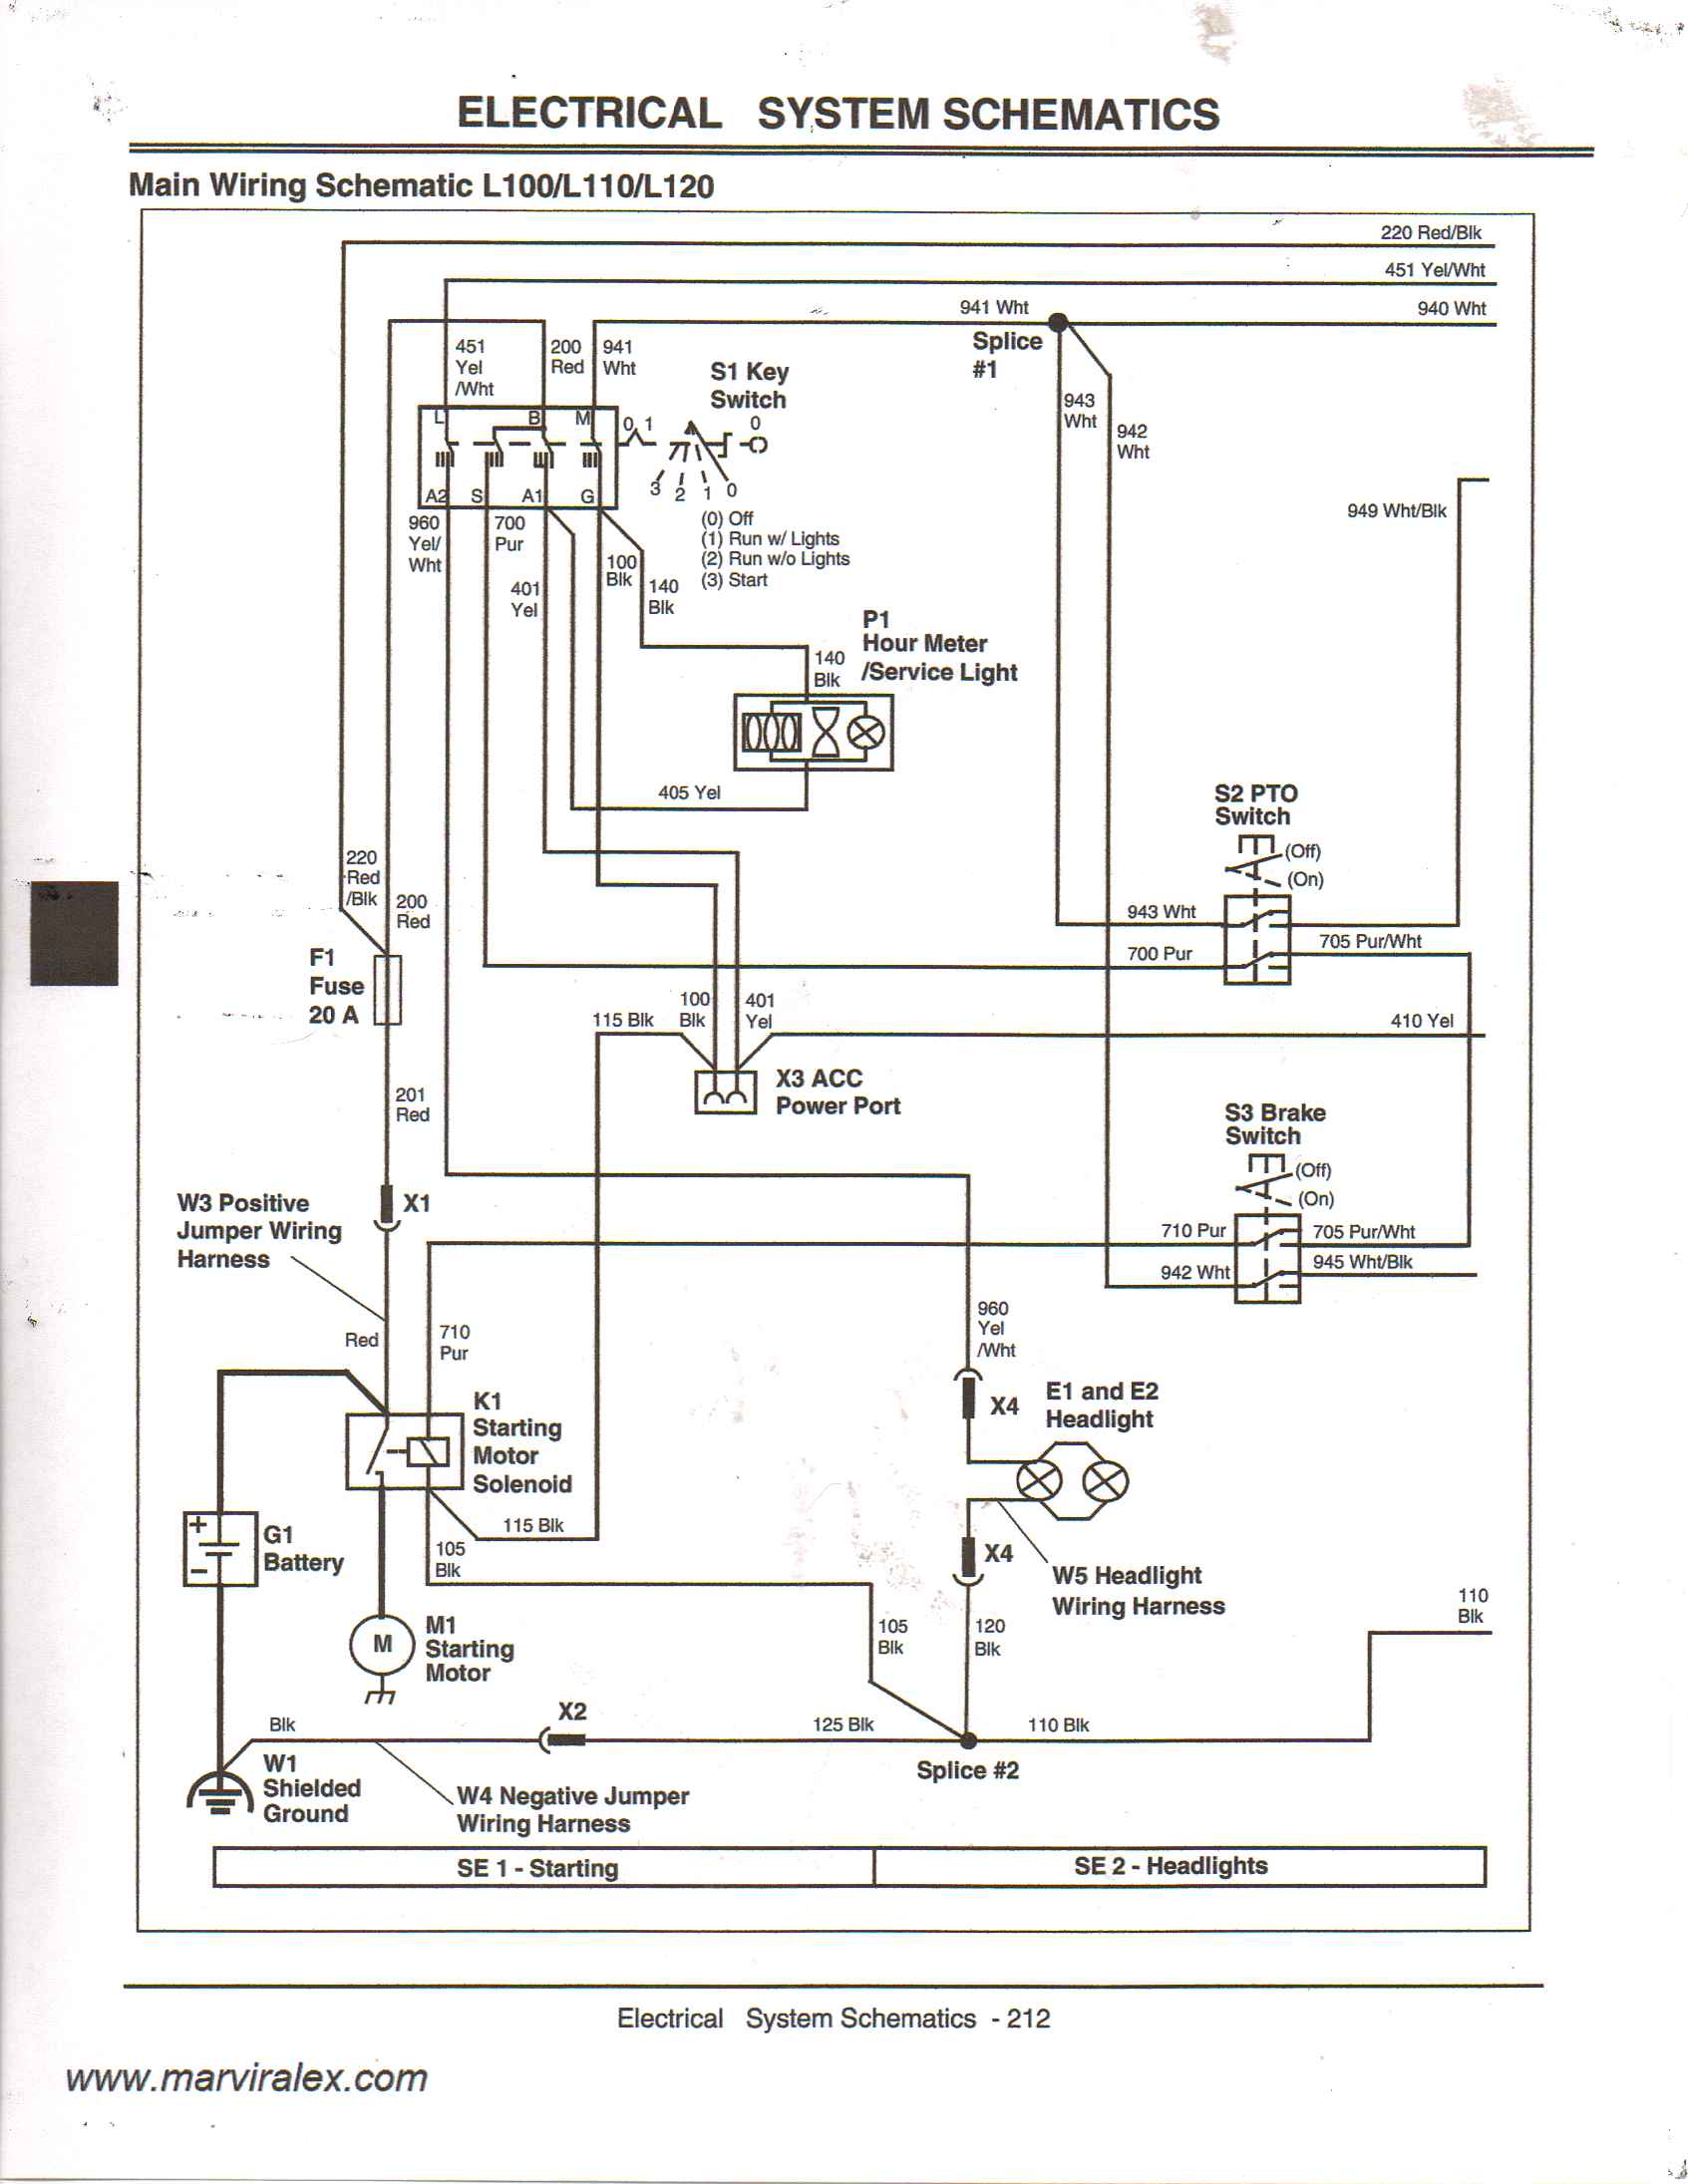 farmall 460 wiring diagram - wiring diagrams for 86 blazer -  toyota-tps.tukune.jeanjaures37.fr  wiring diagram resource